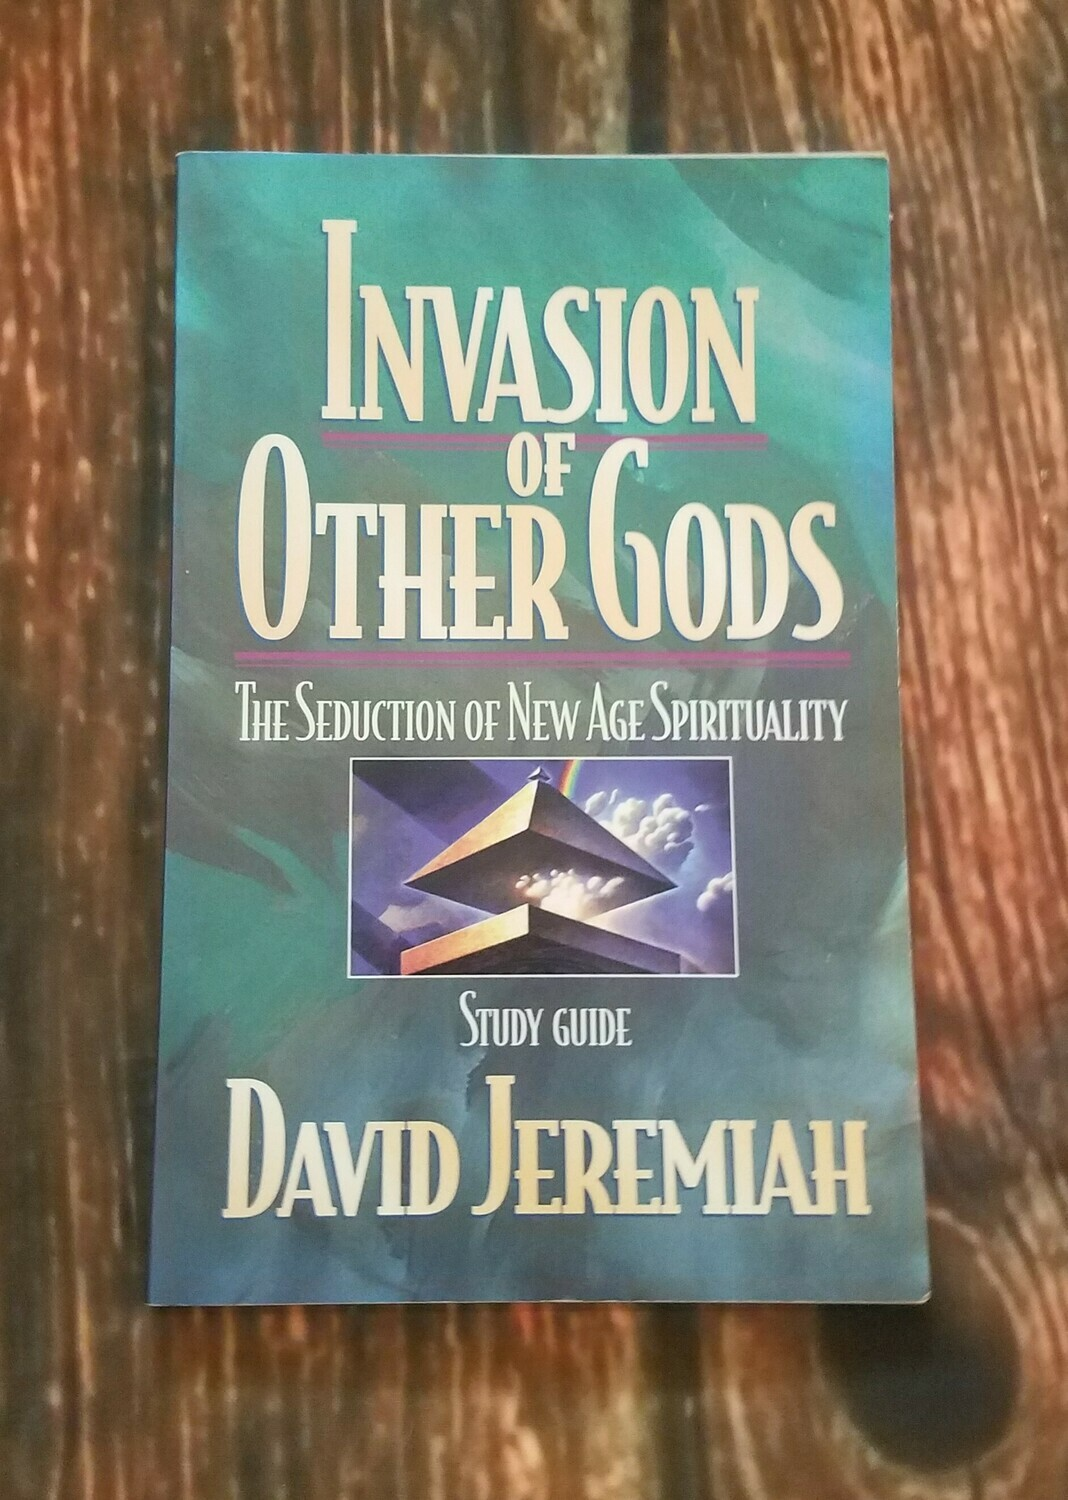 Invasion of Other Gods: The Seduction of New Age Spirituality Study Guide by David Jeremiah